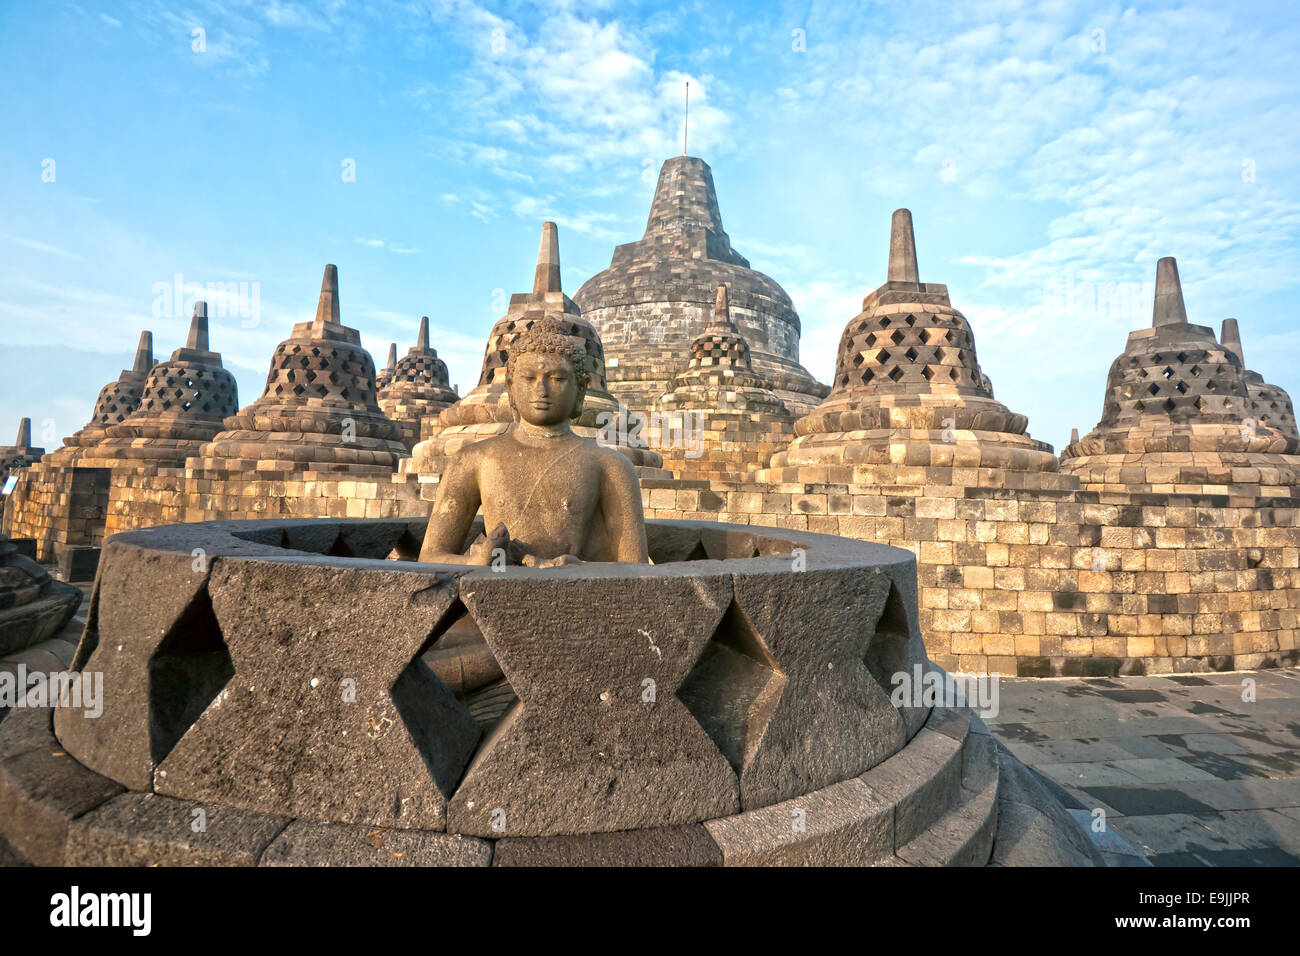 Borobudur Temple at sunset. Yogyakarta, Java, Indonesia. - Stock Image